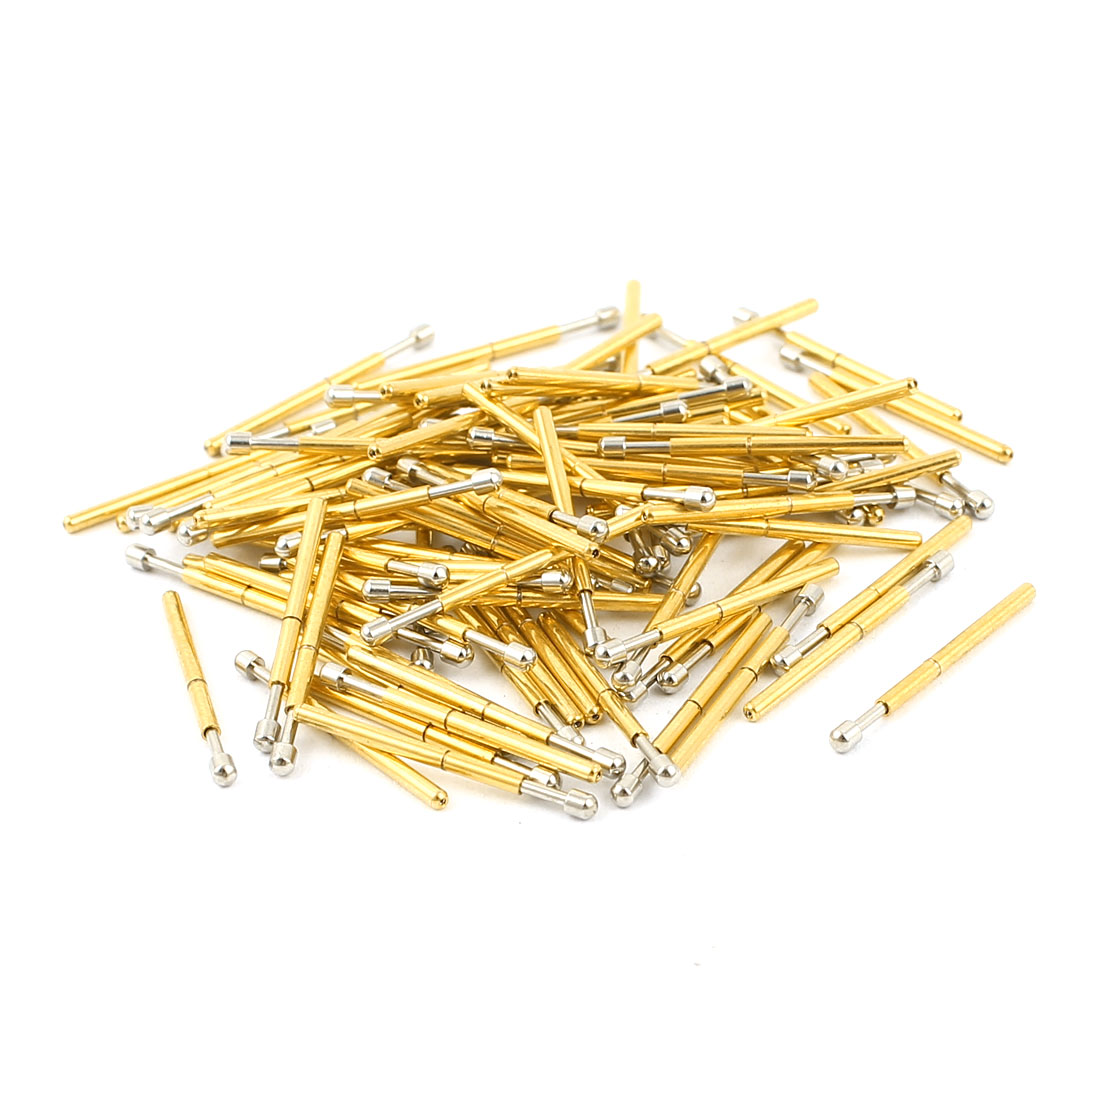 100 Pcs P75-D2 1.3mm Spherical Tip Spring Testing Probes Pin 16.5mm Length